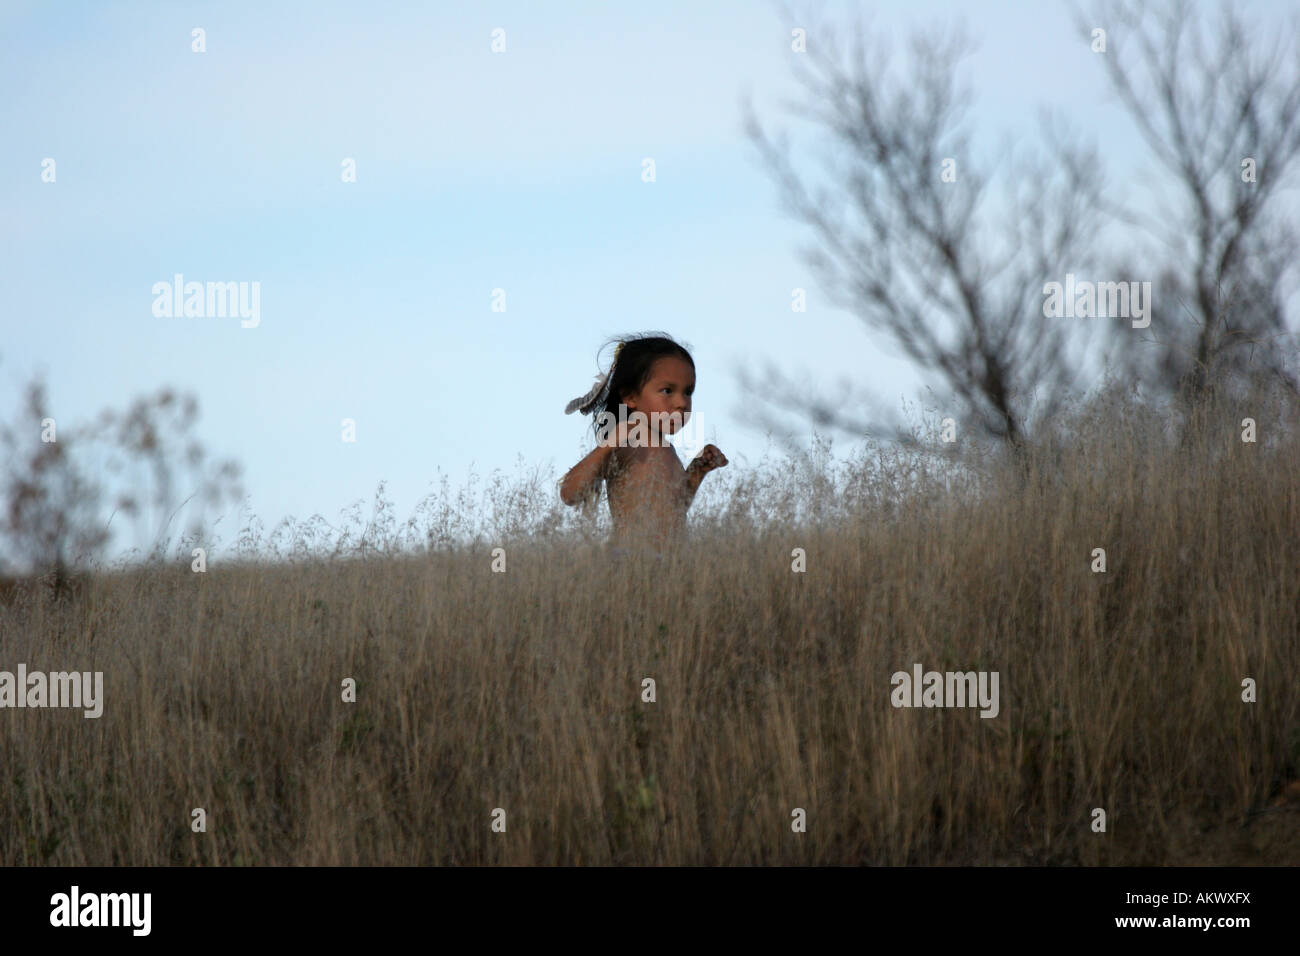 A Native American Indian boy running in the dried grasses - Stock Image